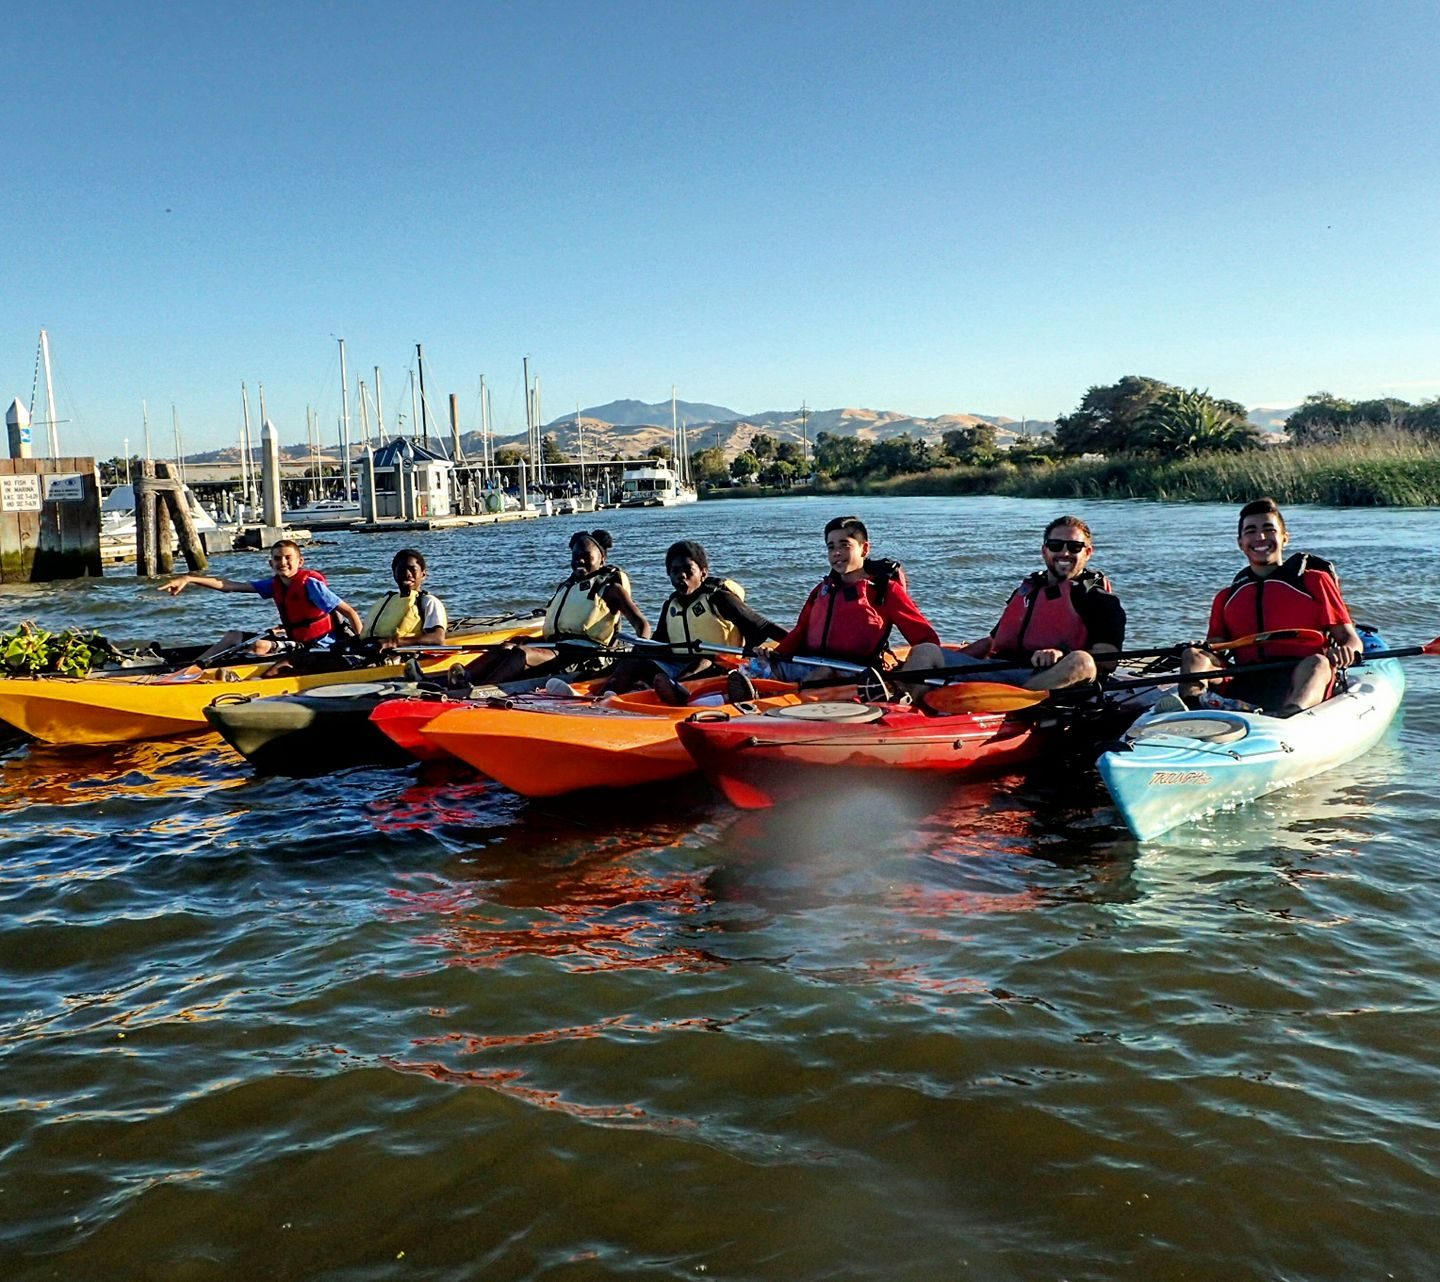 8 people in single kayaks rafted up and smiling